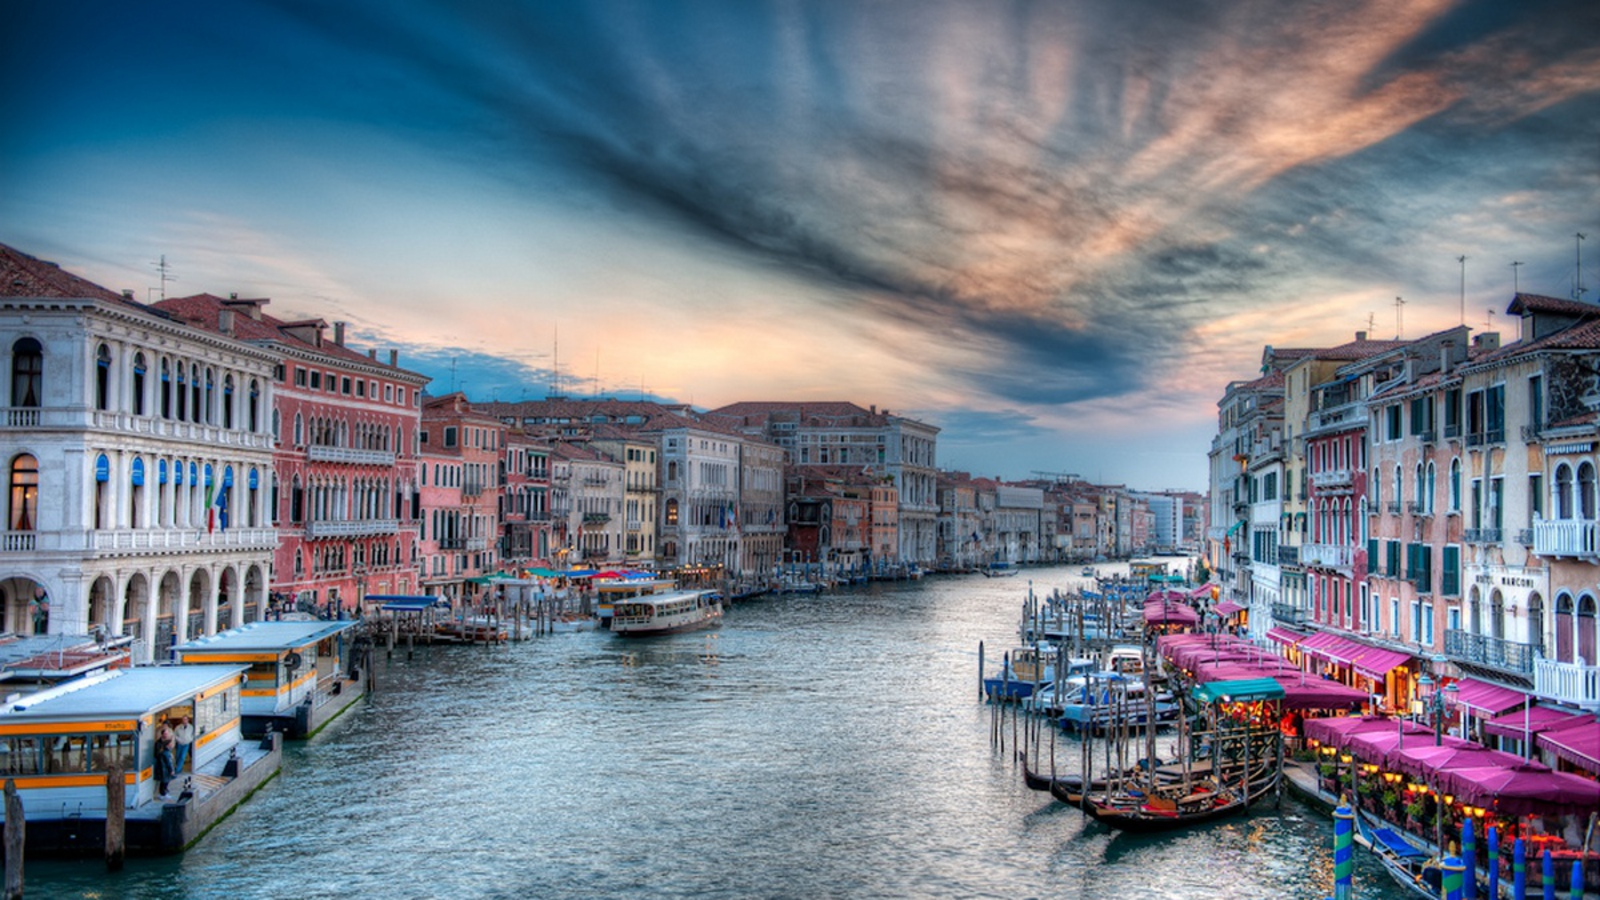 Venice Italy Computer Wallpapers Desktop Backgrounds 1600x900 ID 1600x900